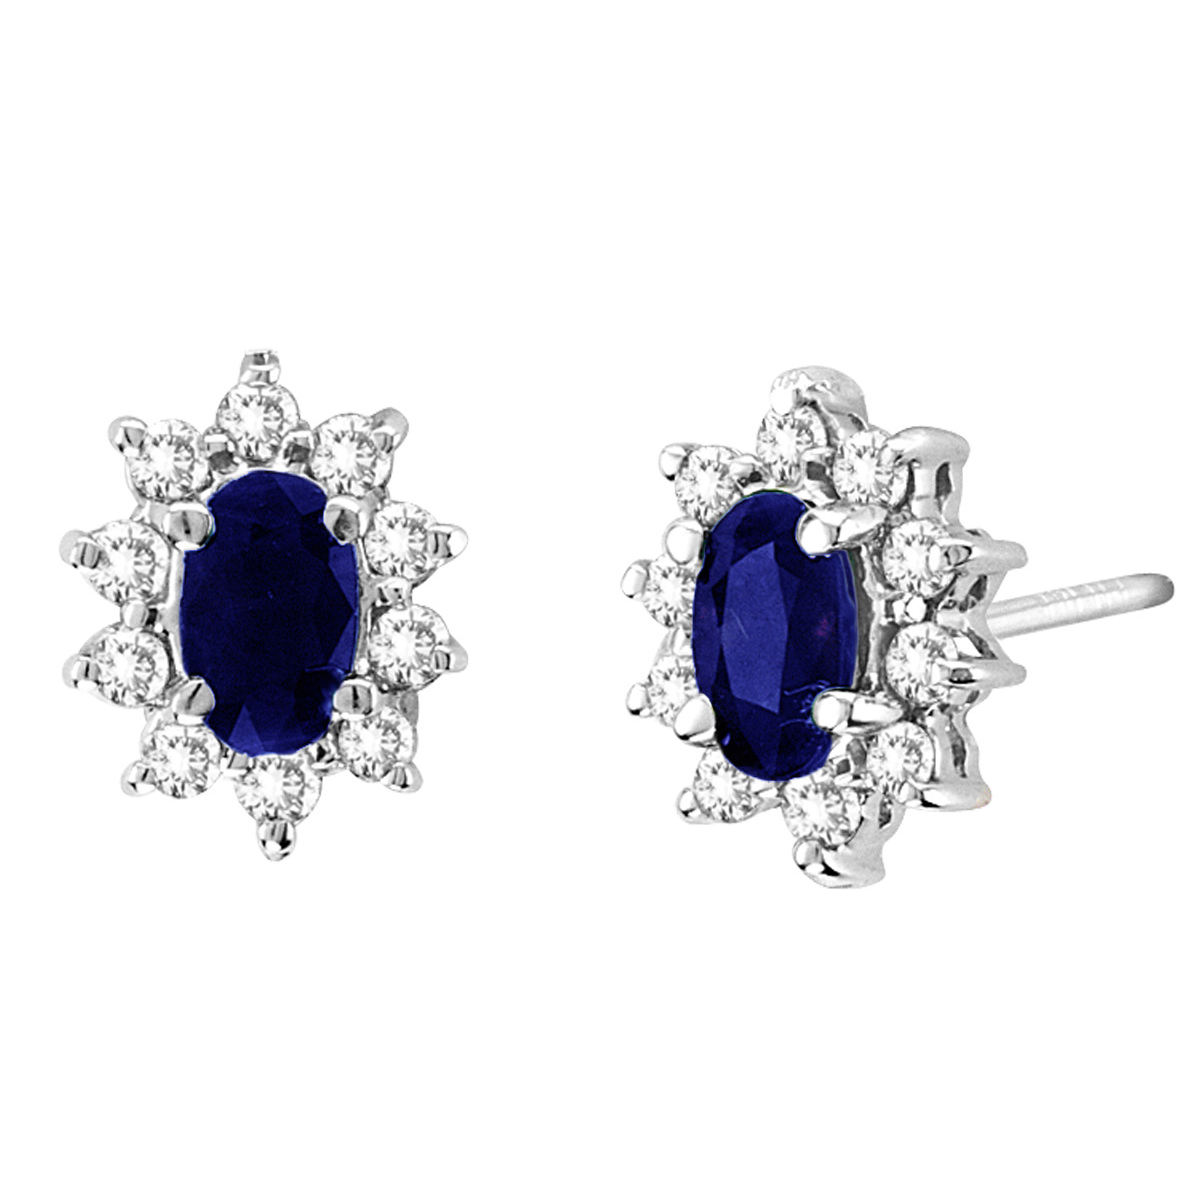 0.70cttw Diamond and Sapphire Earring in 14k Gold